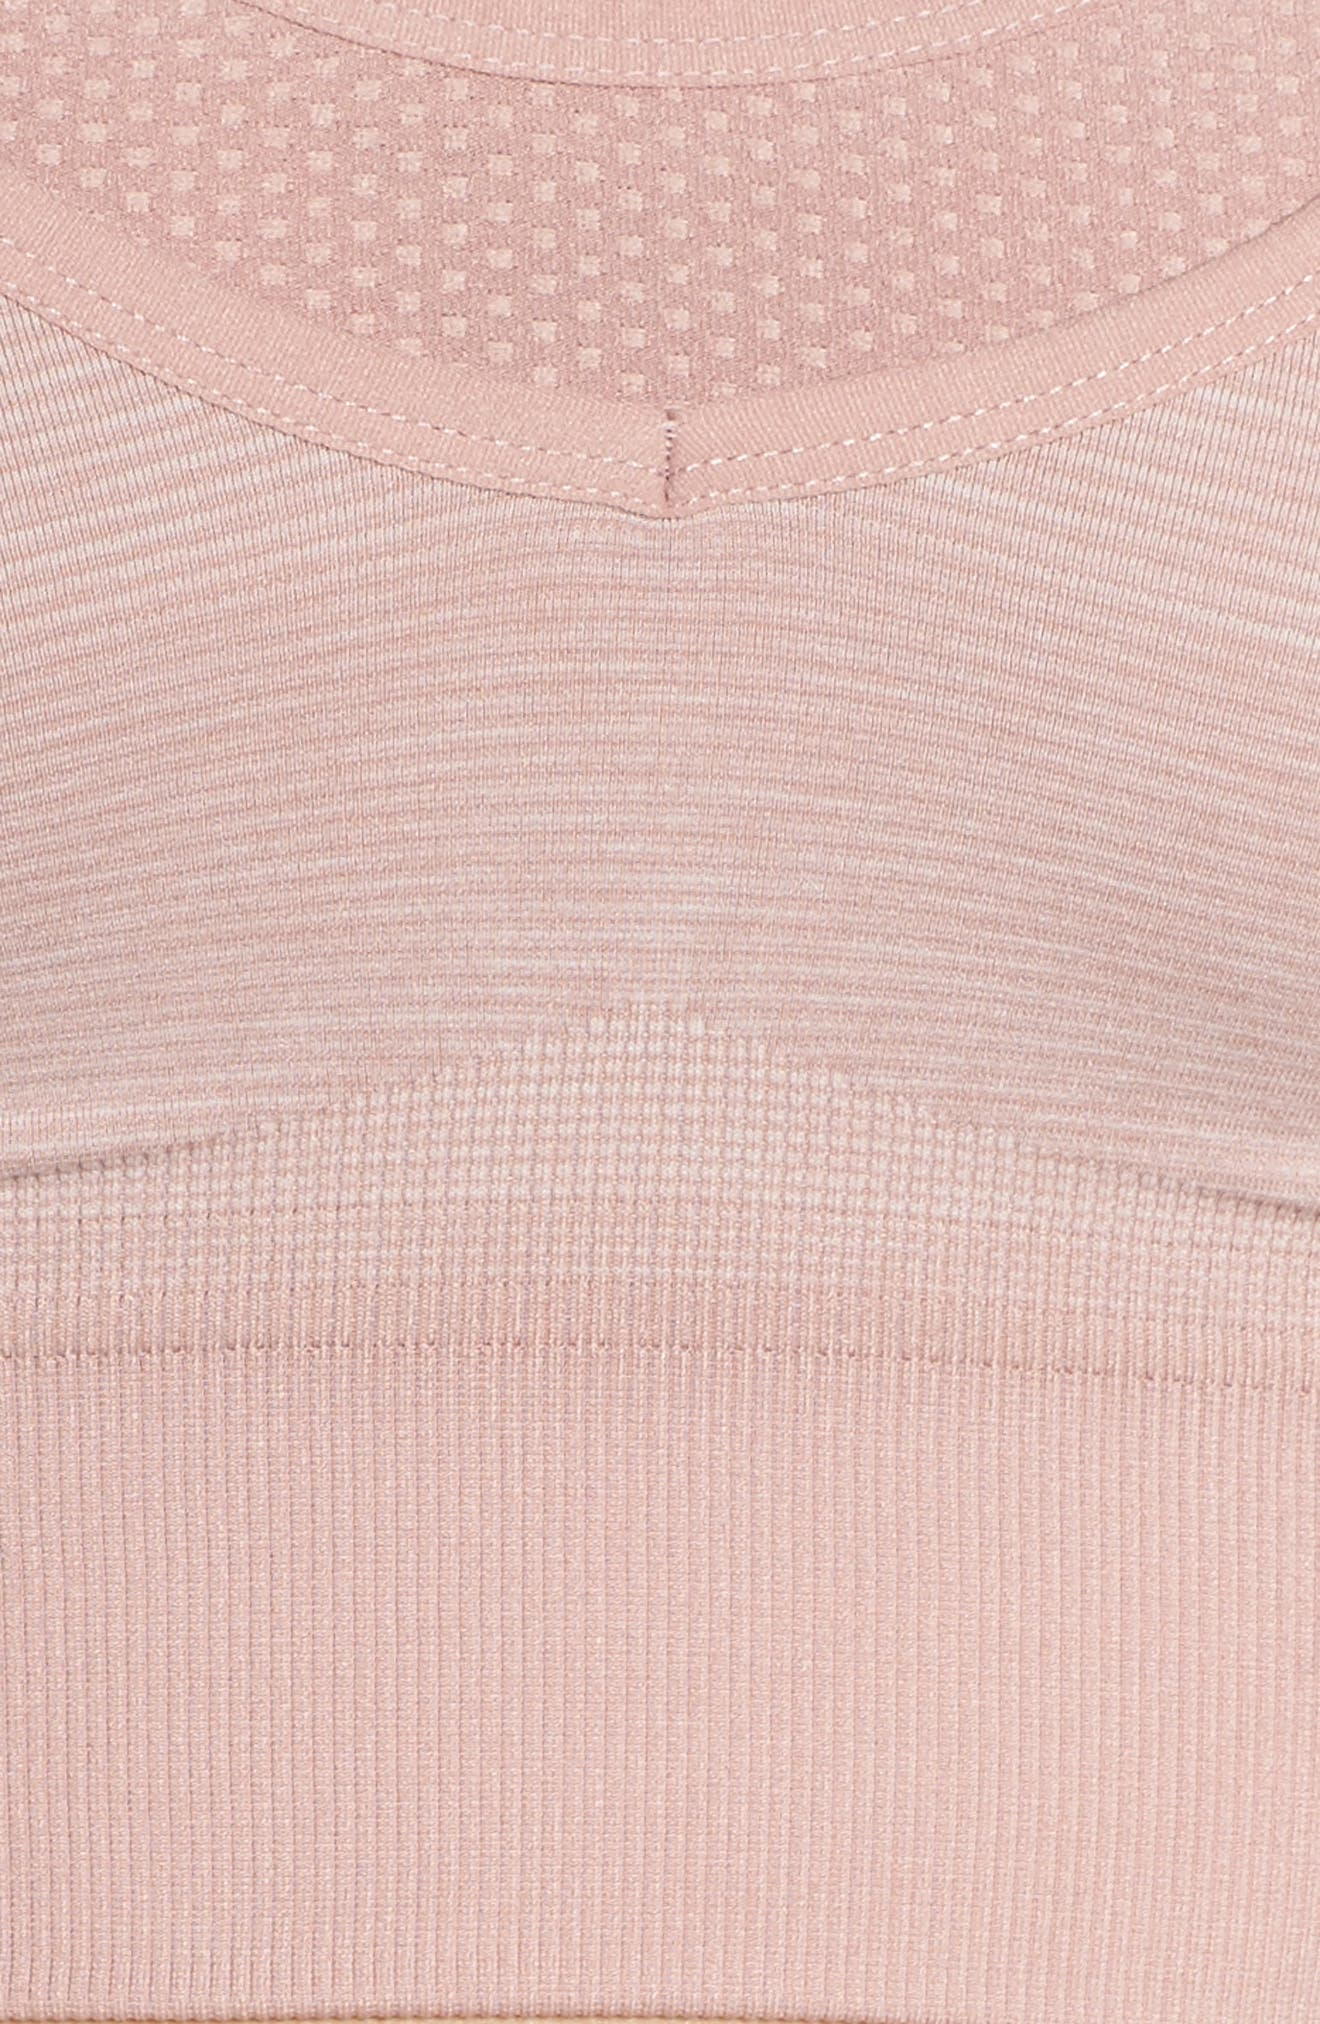 Layered Longline Sports Bra,                             Alternate thumbnail 6, color,                             Pink Dusk